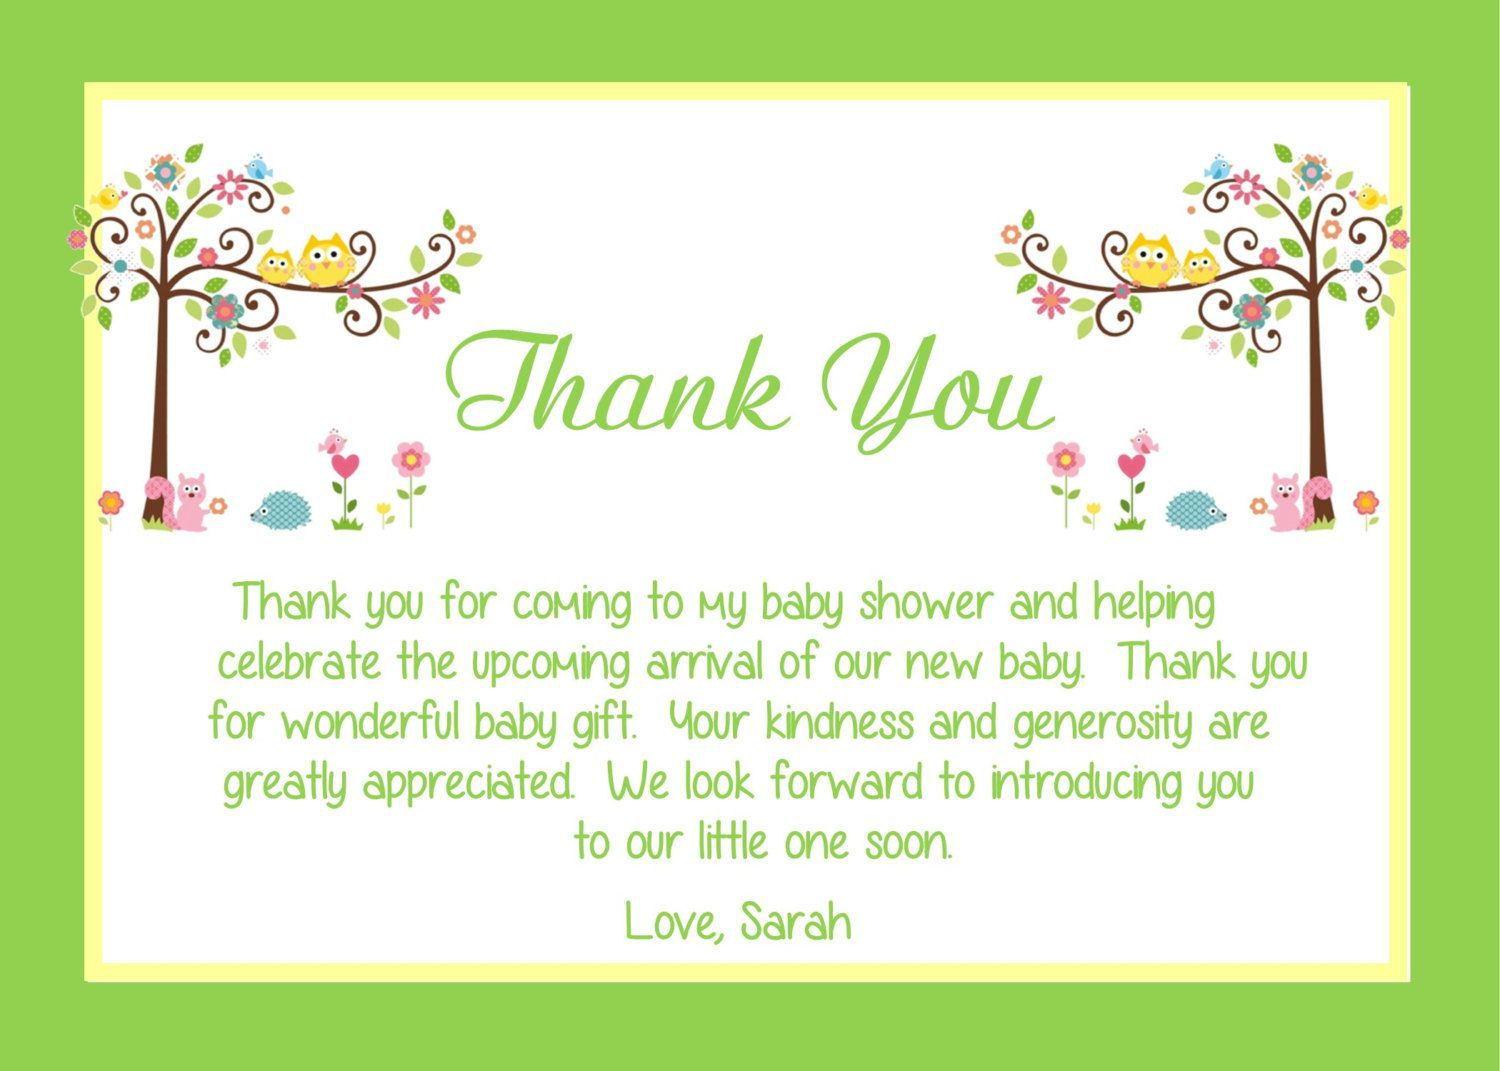 001 Fantastic Thank You Card Wording Baby Shower Gift High Resolution  For Multiple GroupFull